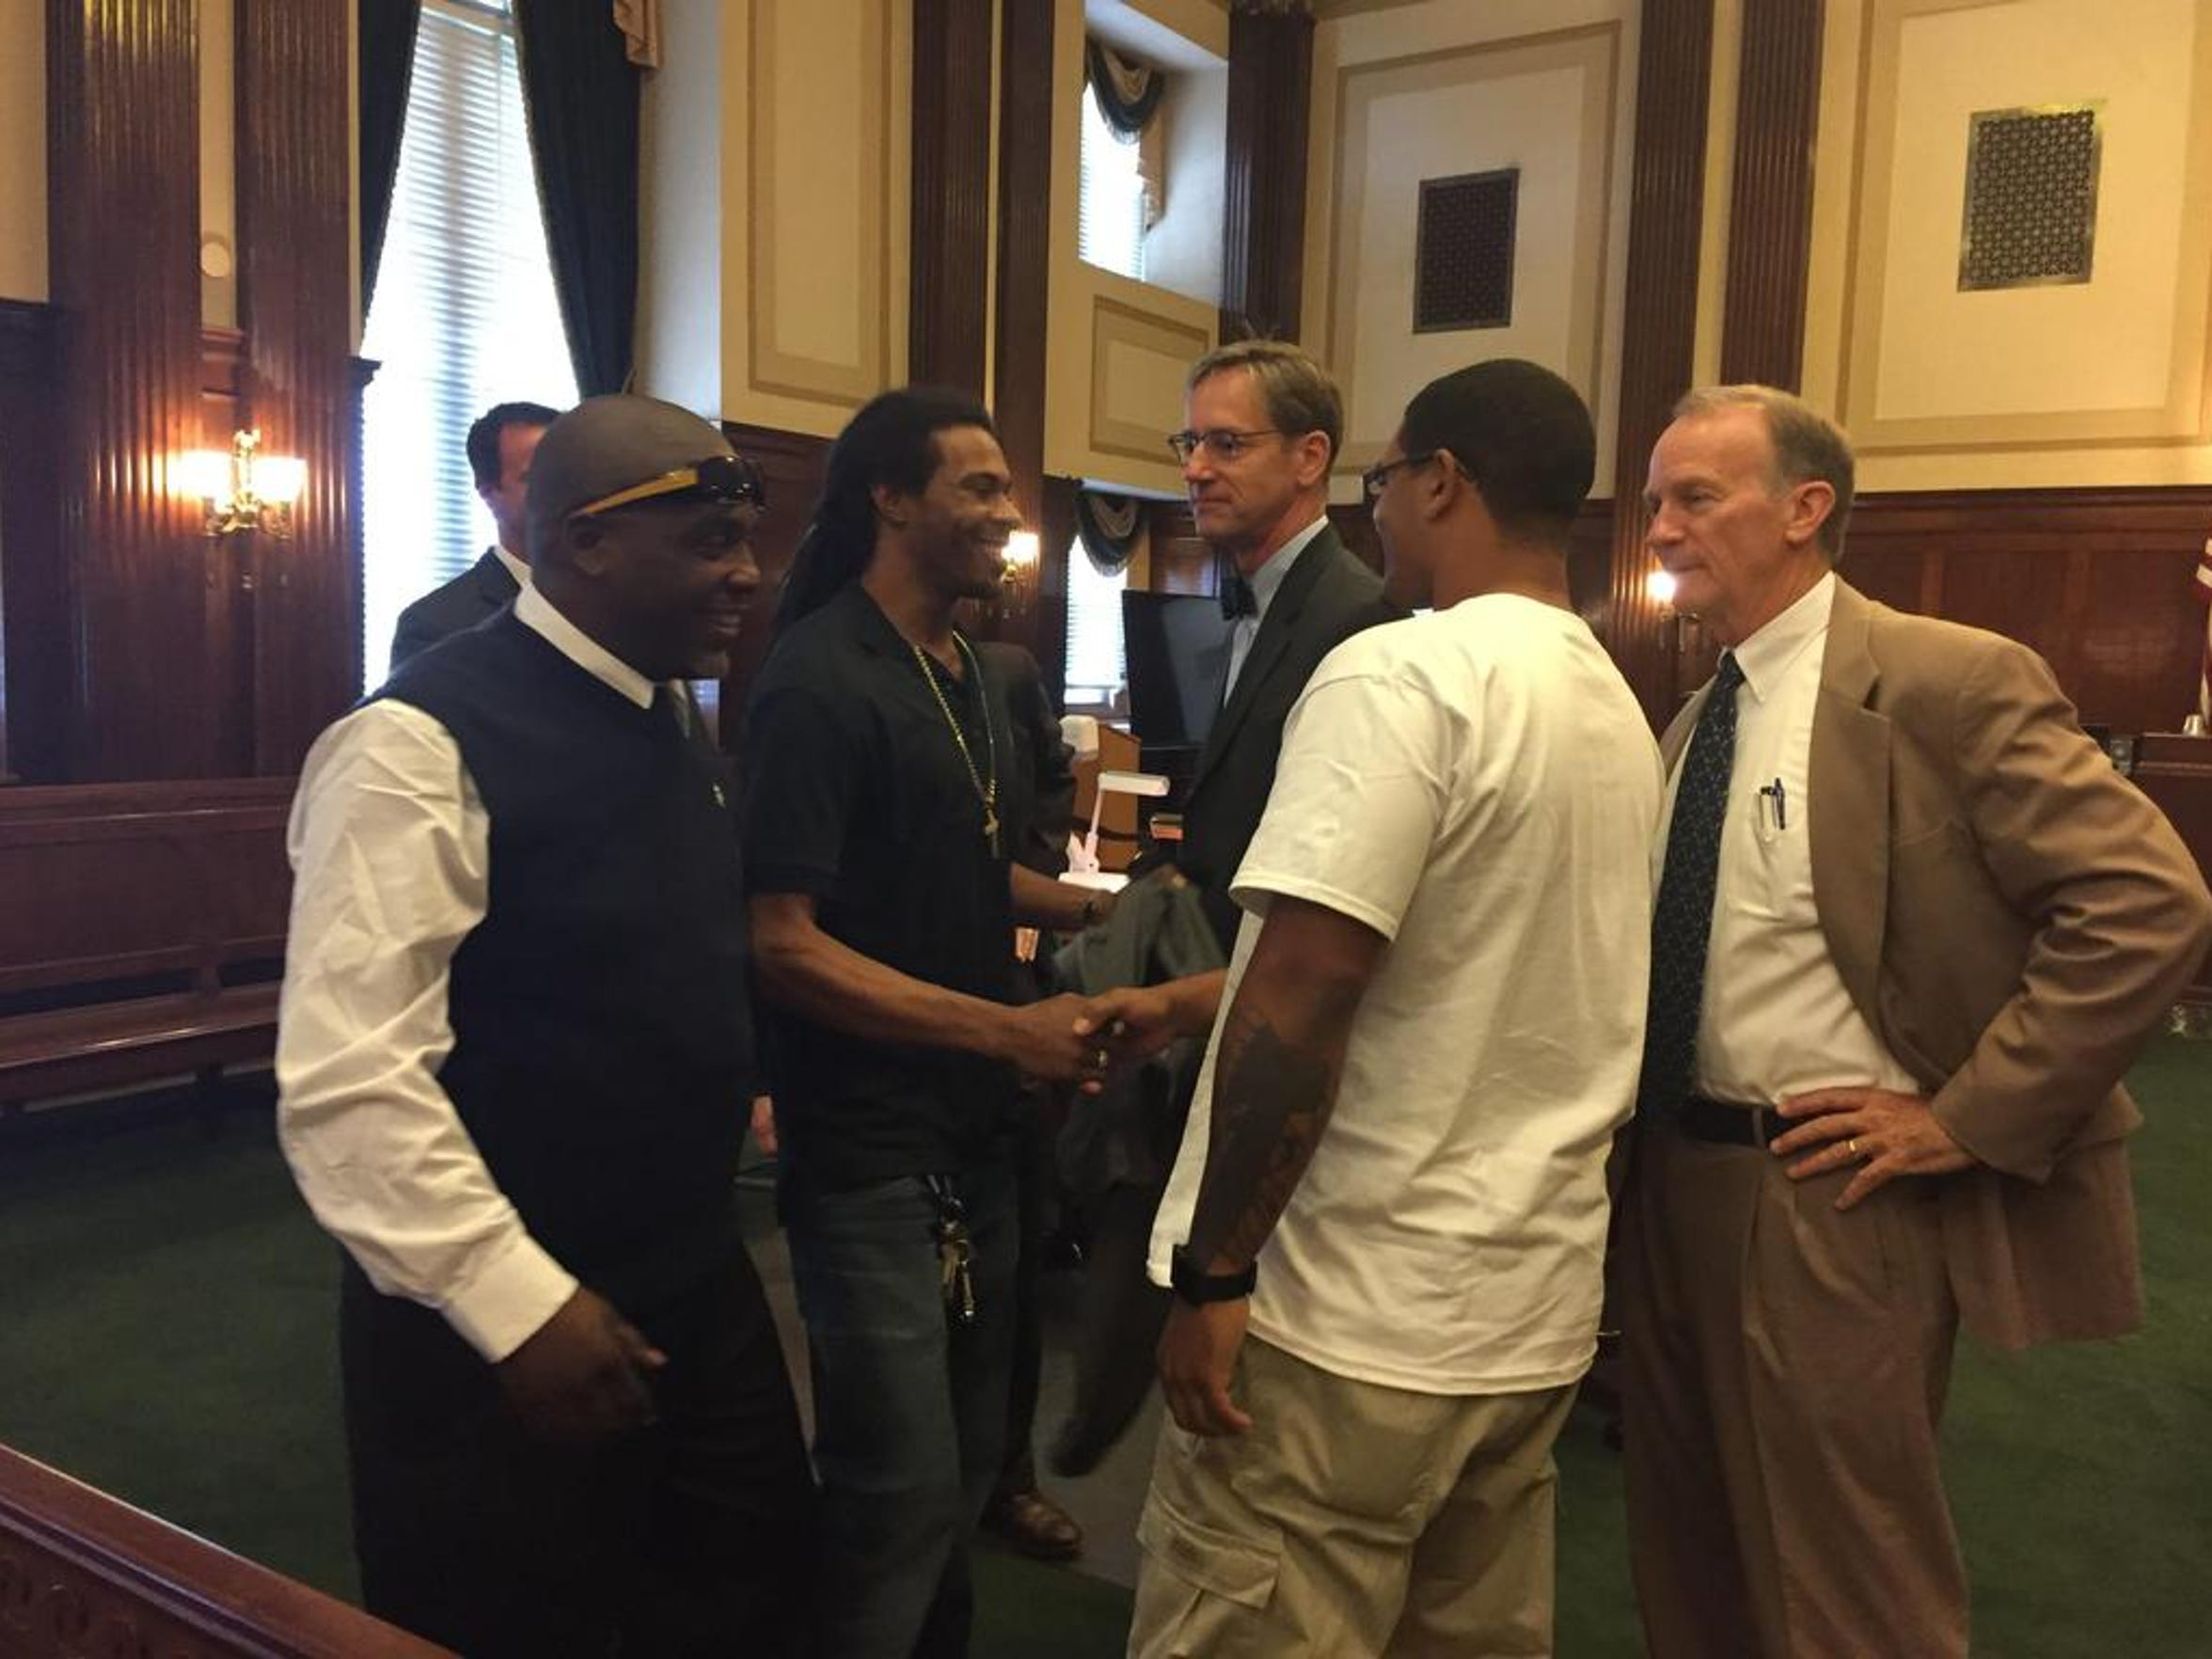 Teddy Isbell Sr., looks on as his former co-defendents, Larry Williams Jr. and Damian Mills, shake hands after a Superior Court judge found them innocent in a 15-year-old homicide. Attorneys Brad Searson and Frank Goldsmith, far right, had long argued the men were not responsible for Walter Bowman's death.